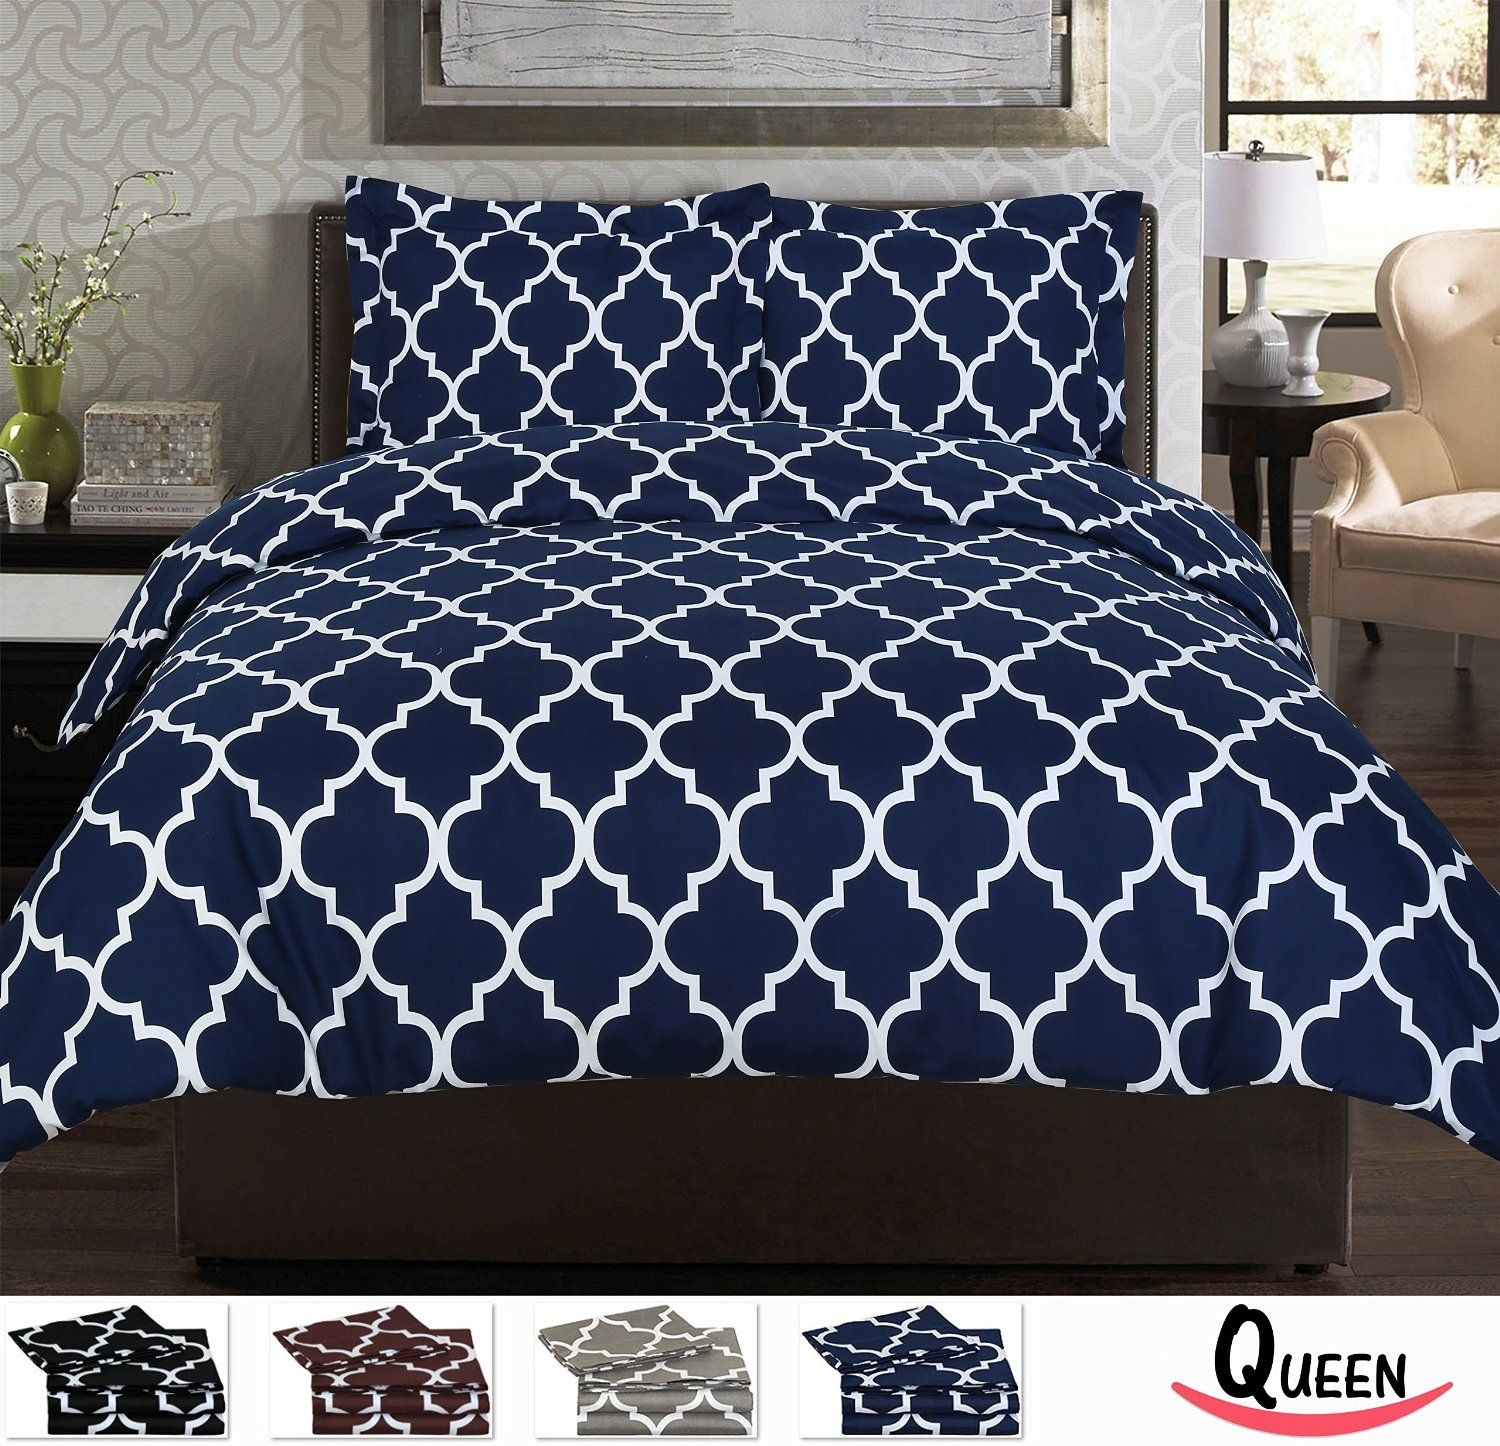 Exceptional Navy Bedding And Navy Quilts